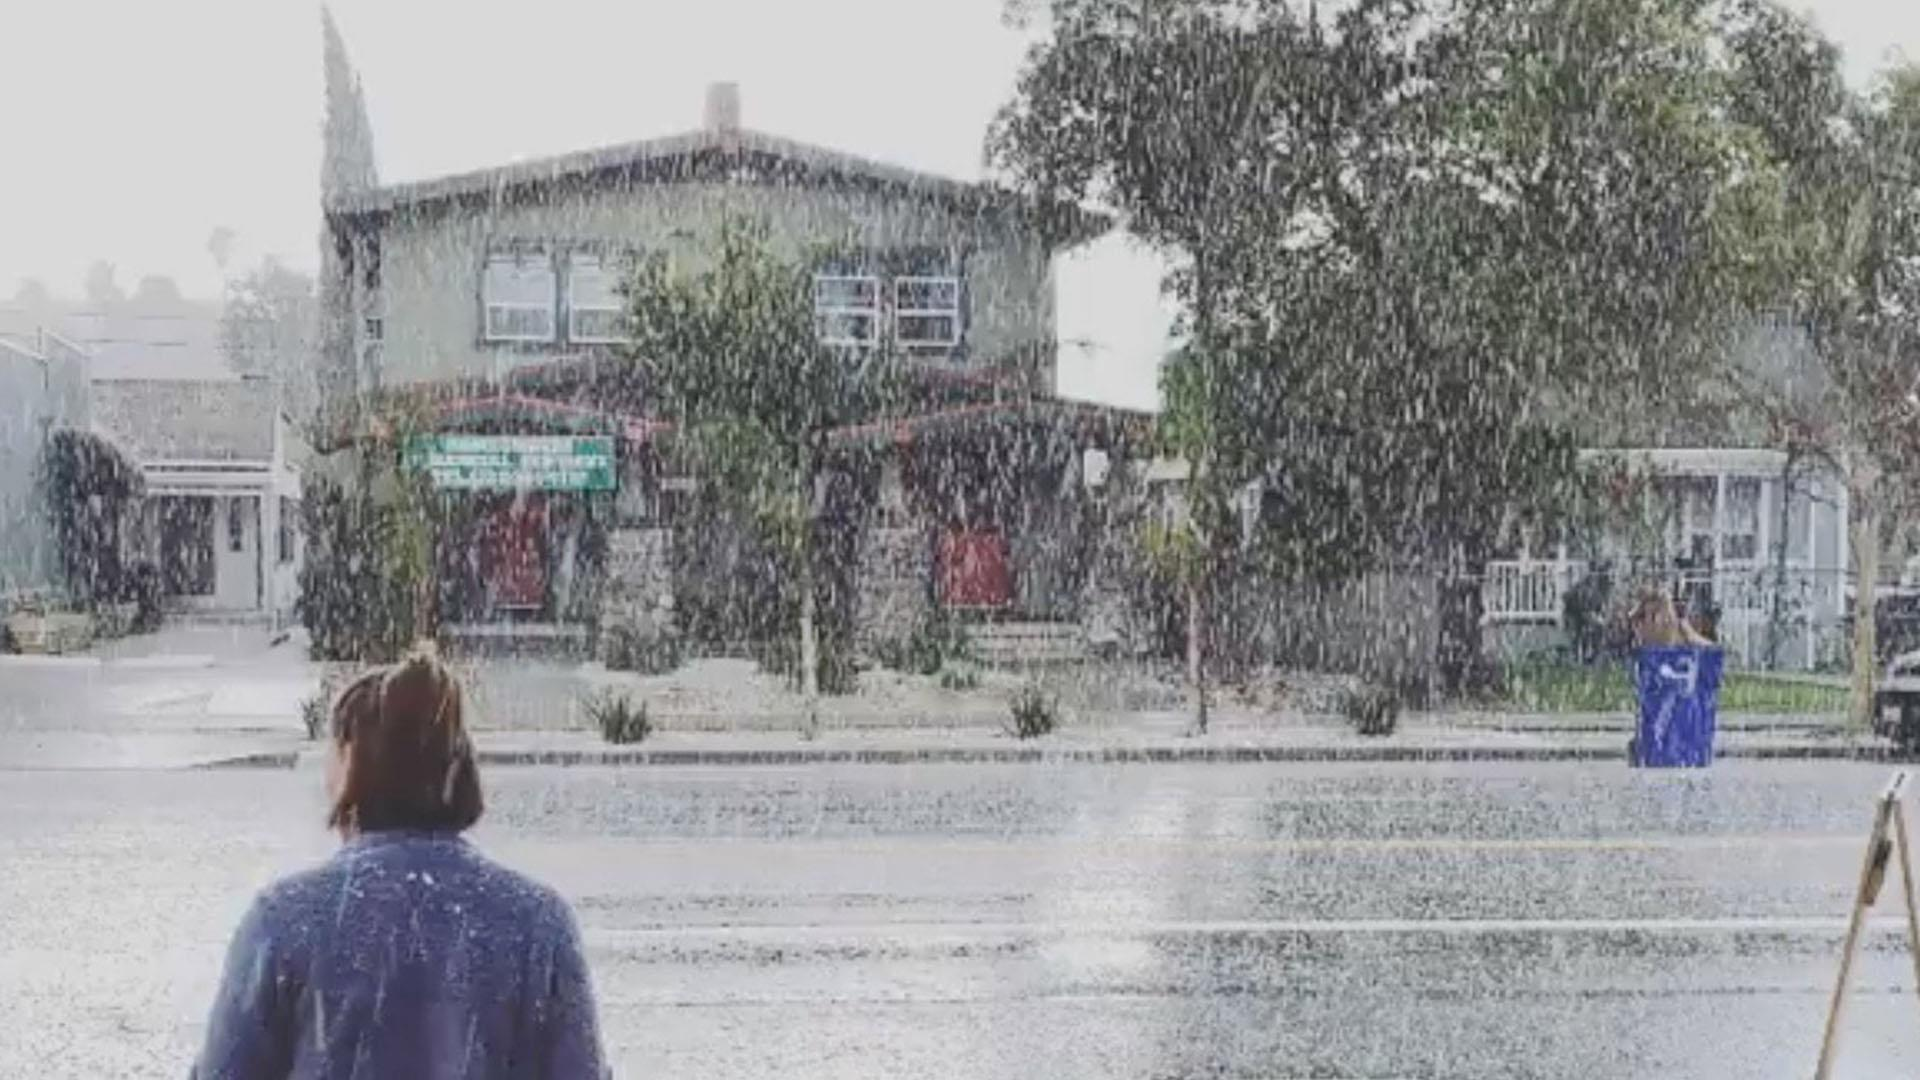 Snow falling in Los Angeles, Pasadena and California's coastal cities.